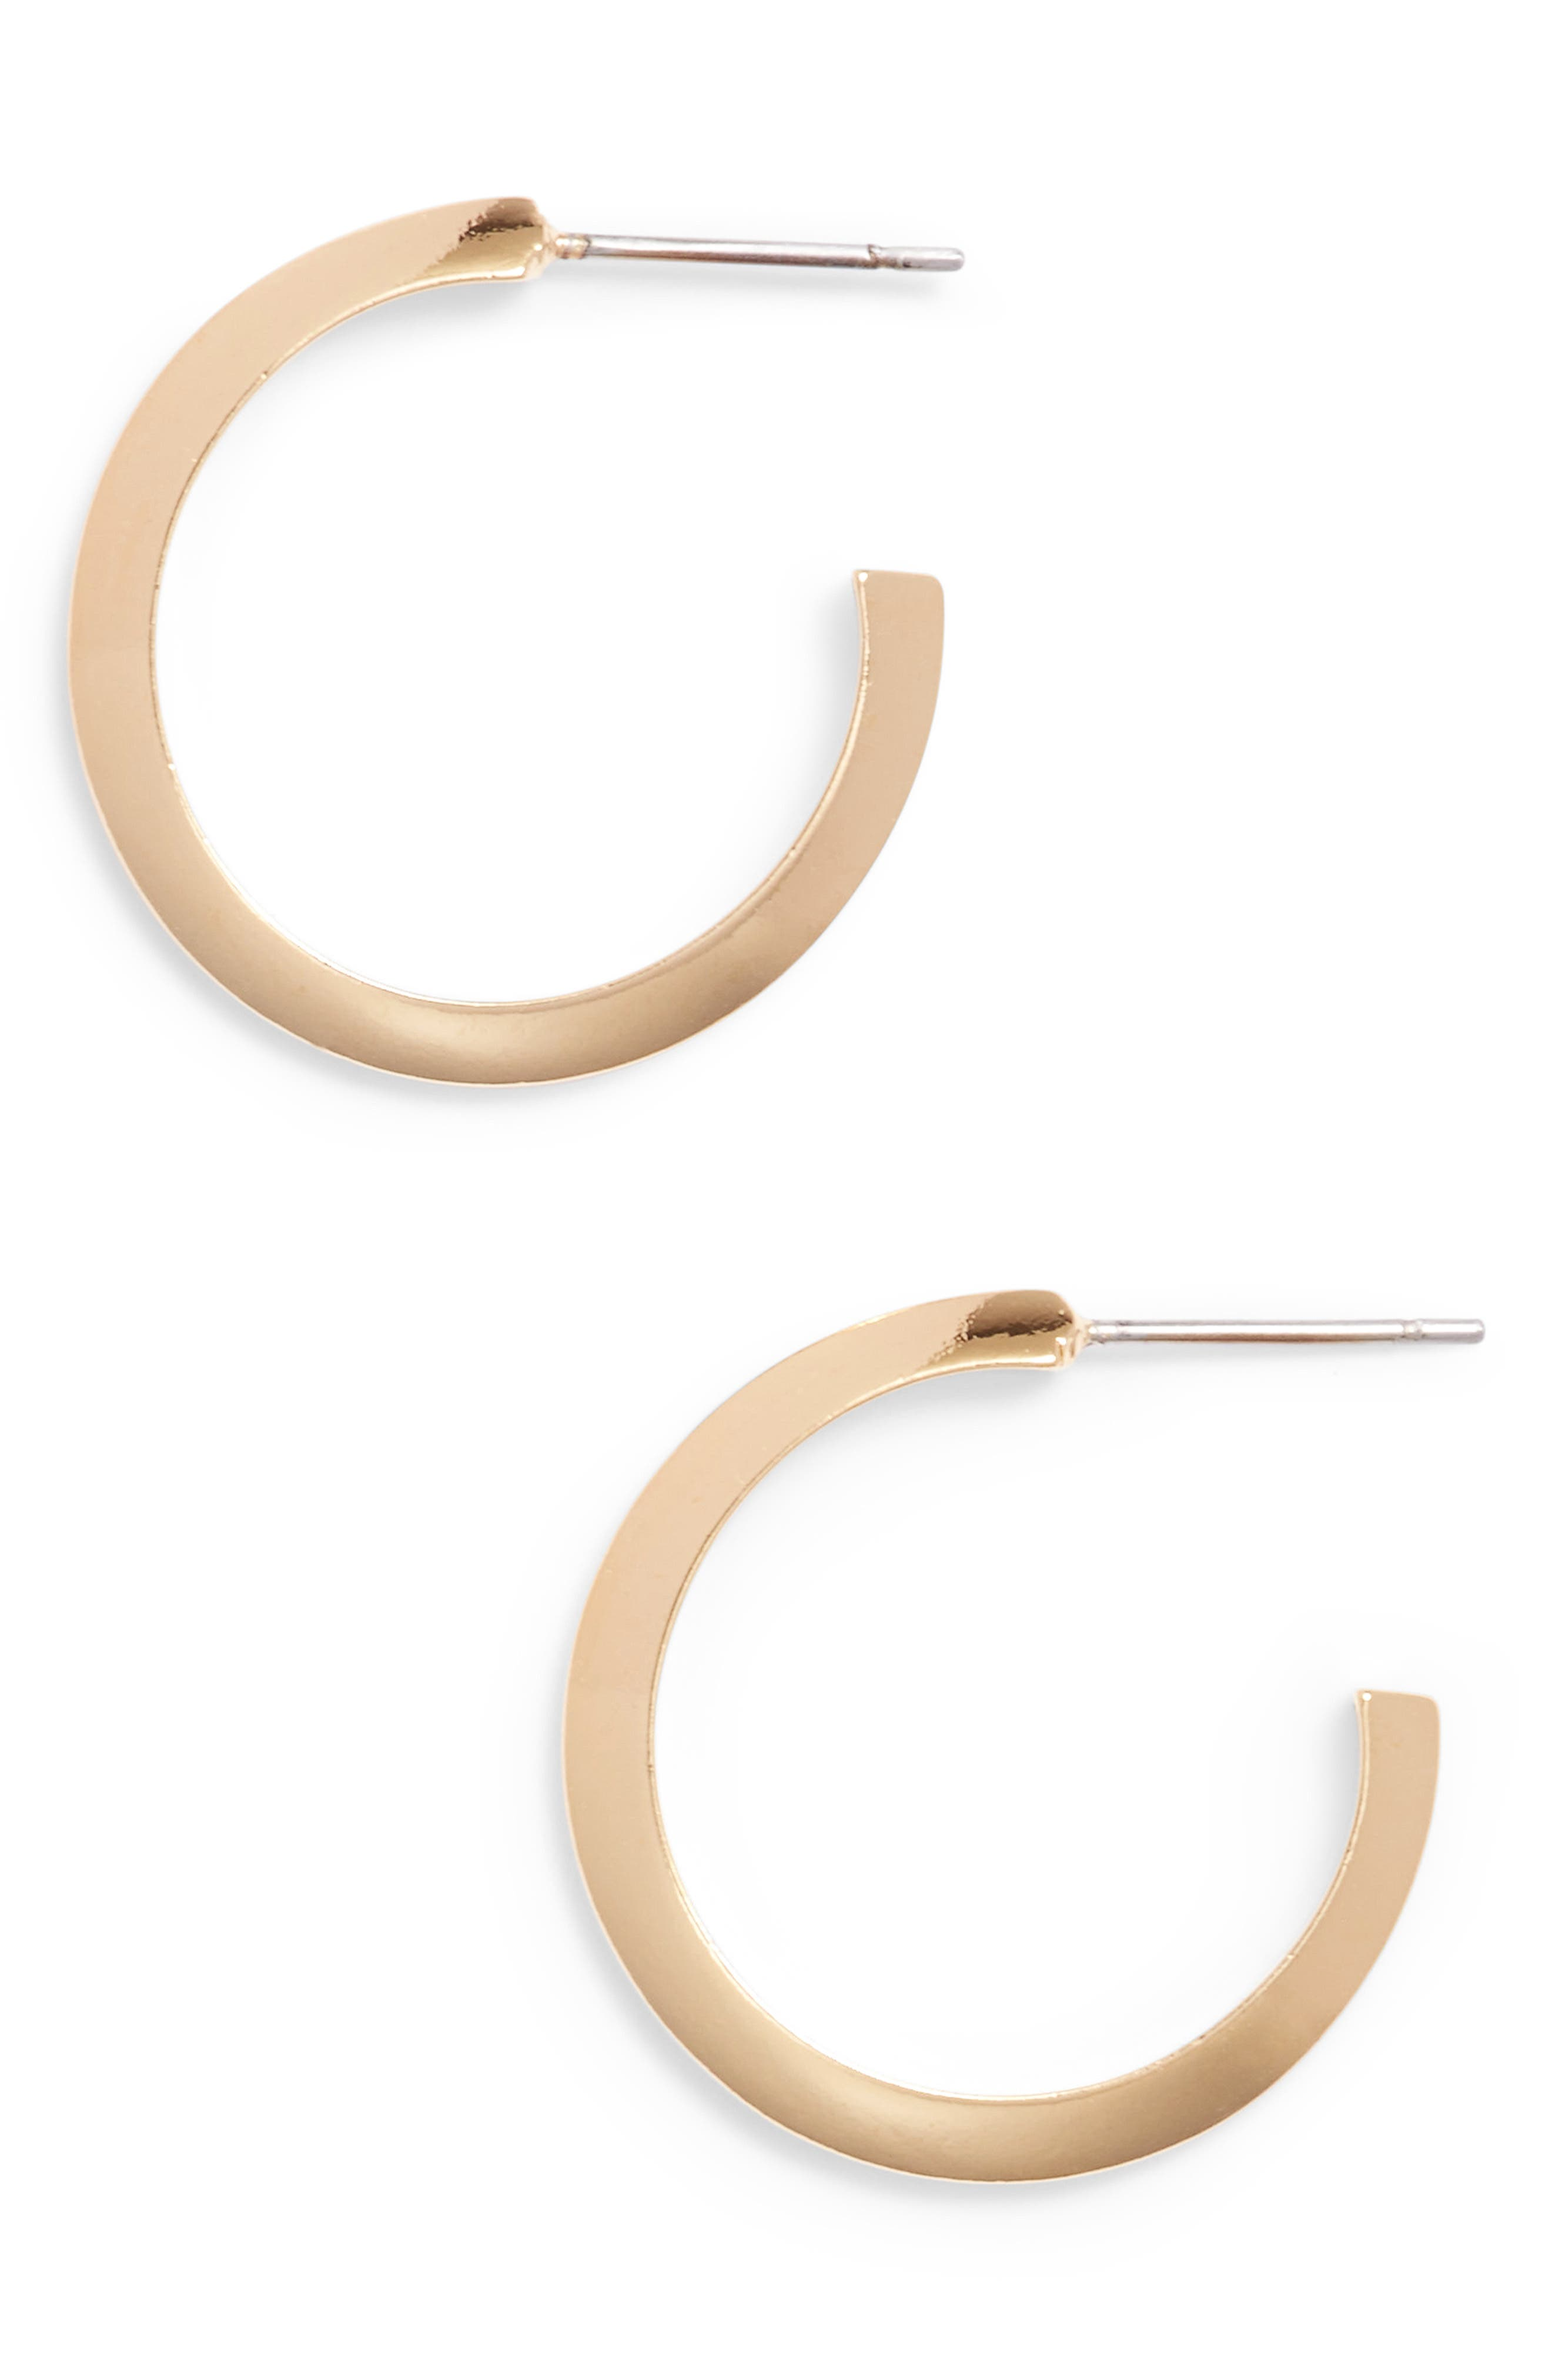 Main Image - Stella Valle Triangle Shaped Hoop Earrings